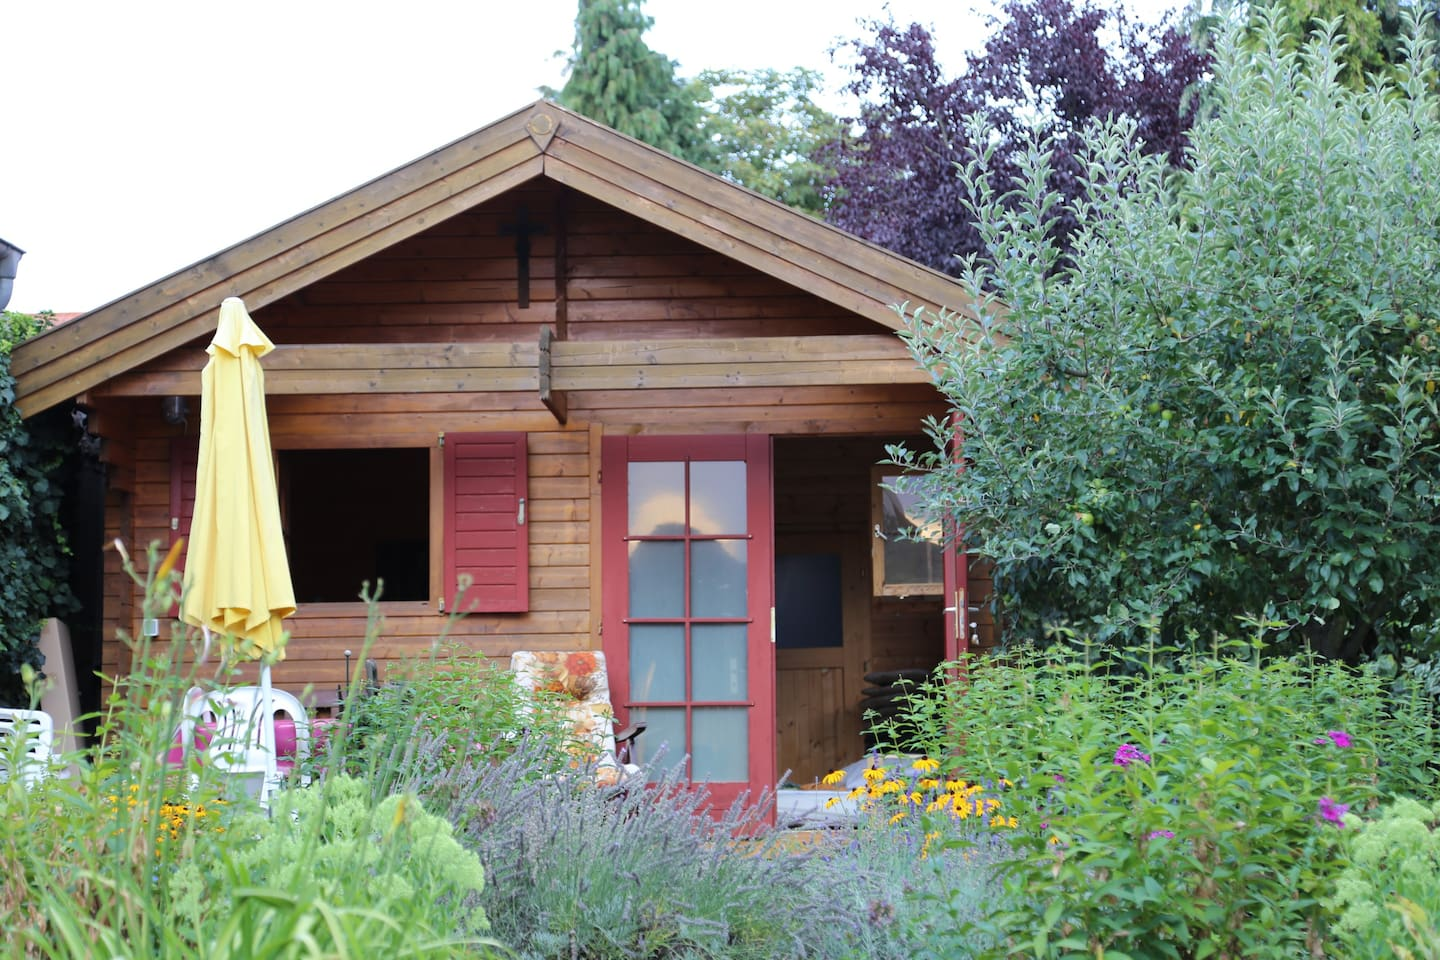 Beautiful wooden house in the middle of the garden!